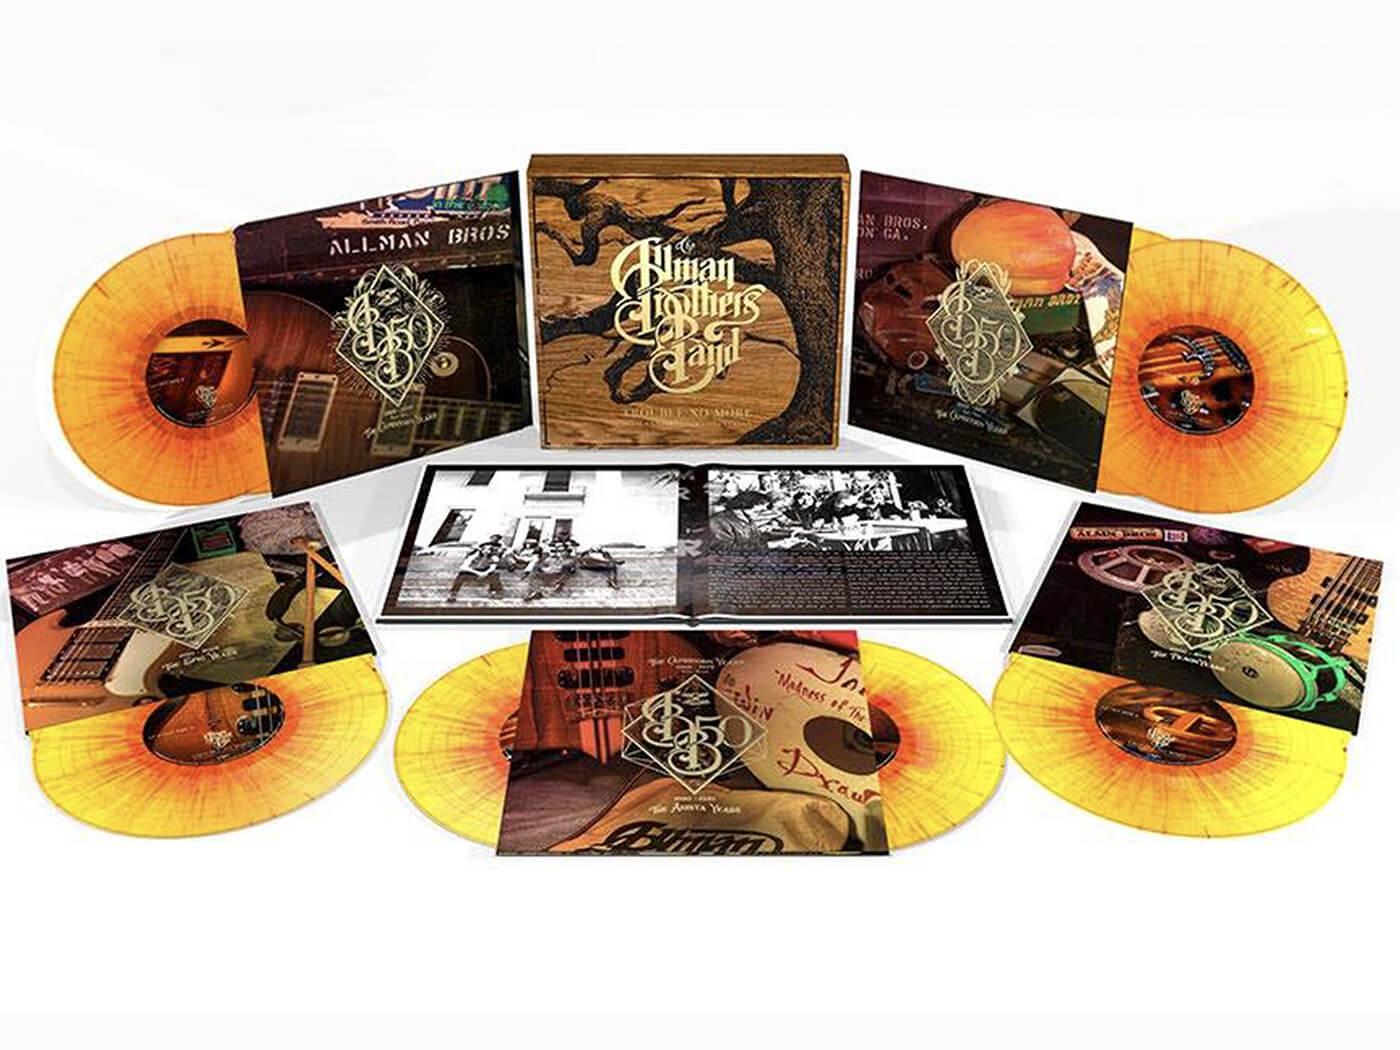 The Allman Brothers Band's 50th anniversary marked with 10xLP set - UNCUT